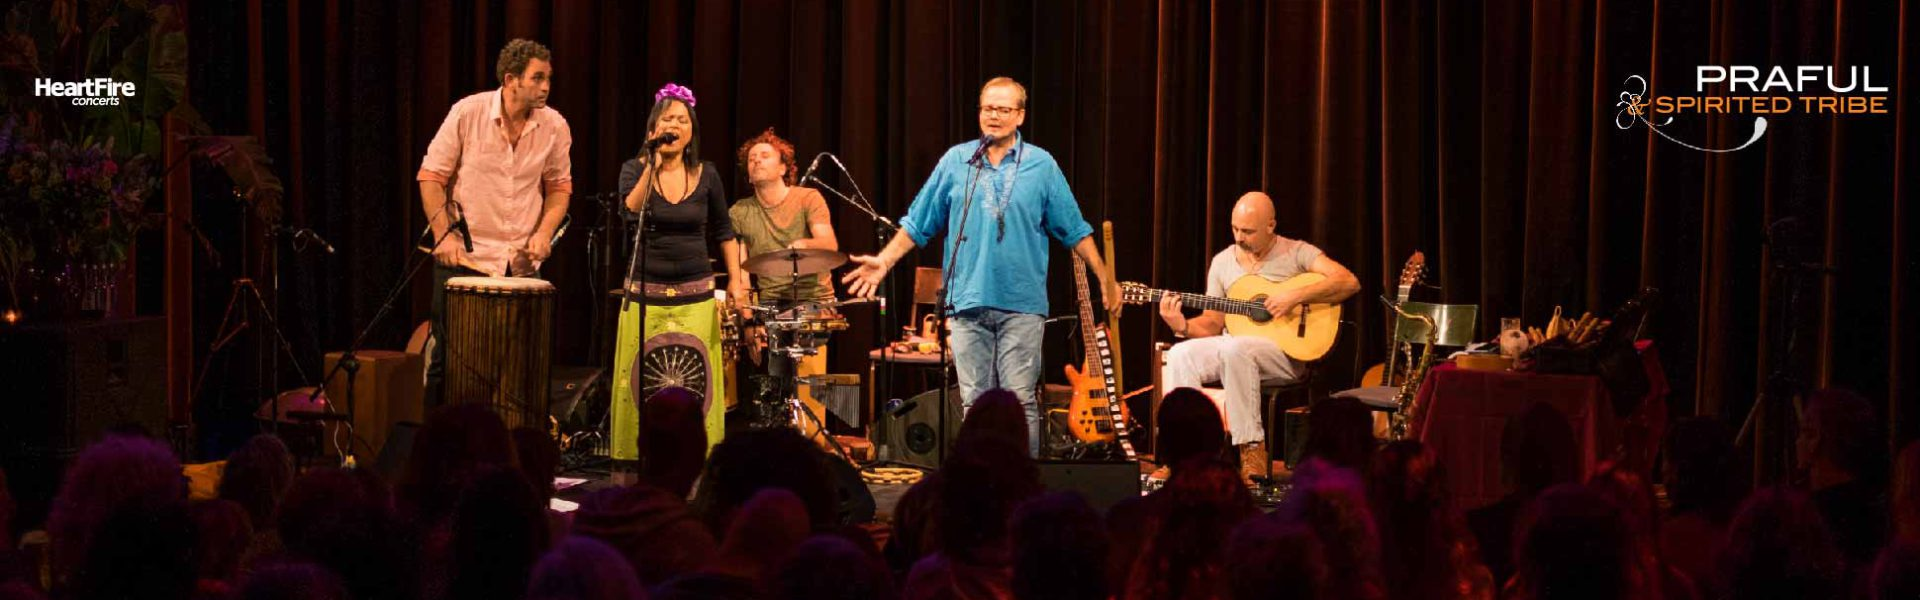 Praful & Spirited Tribe in Concert 15 October 2017 Tobacco Theater